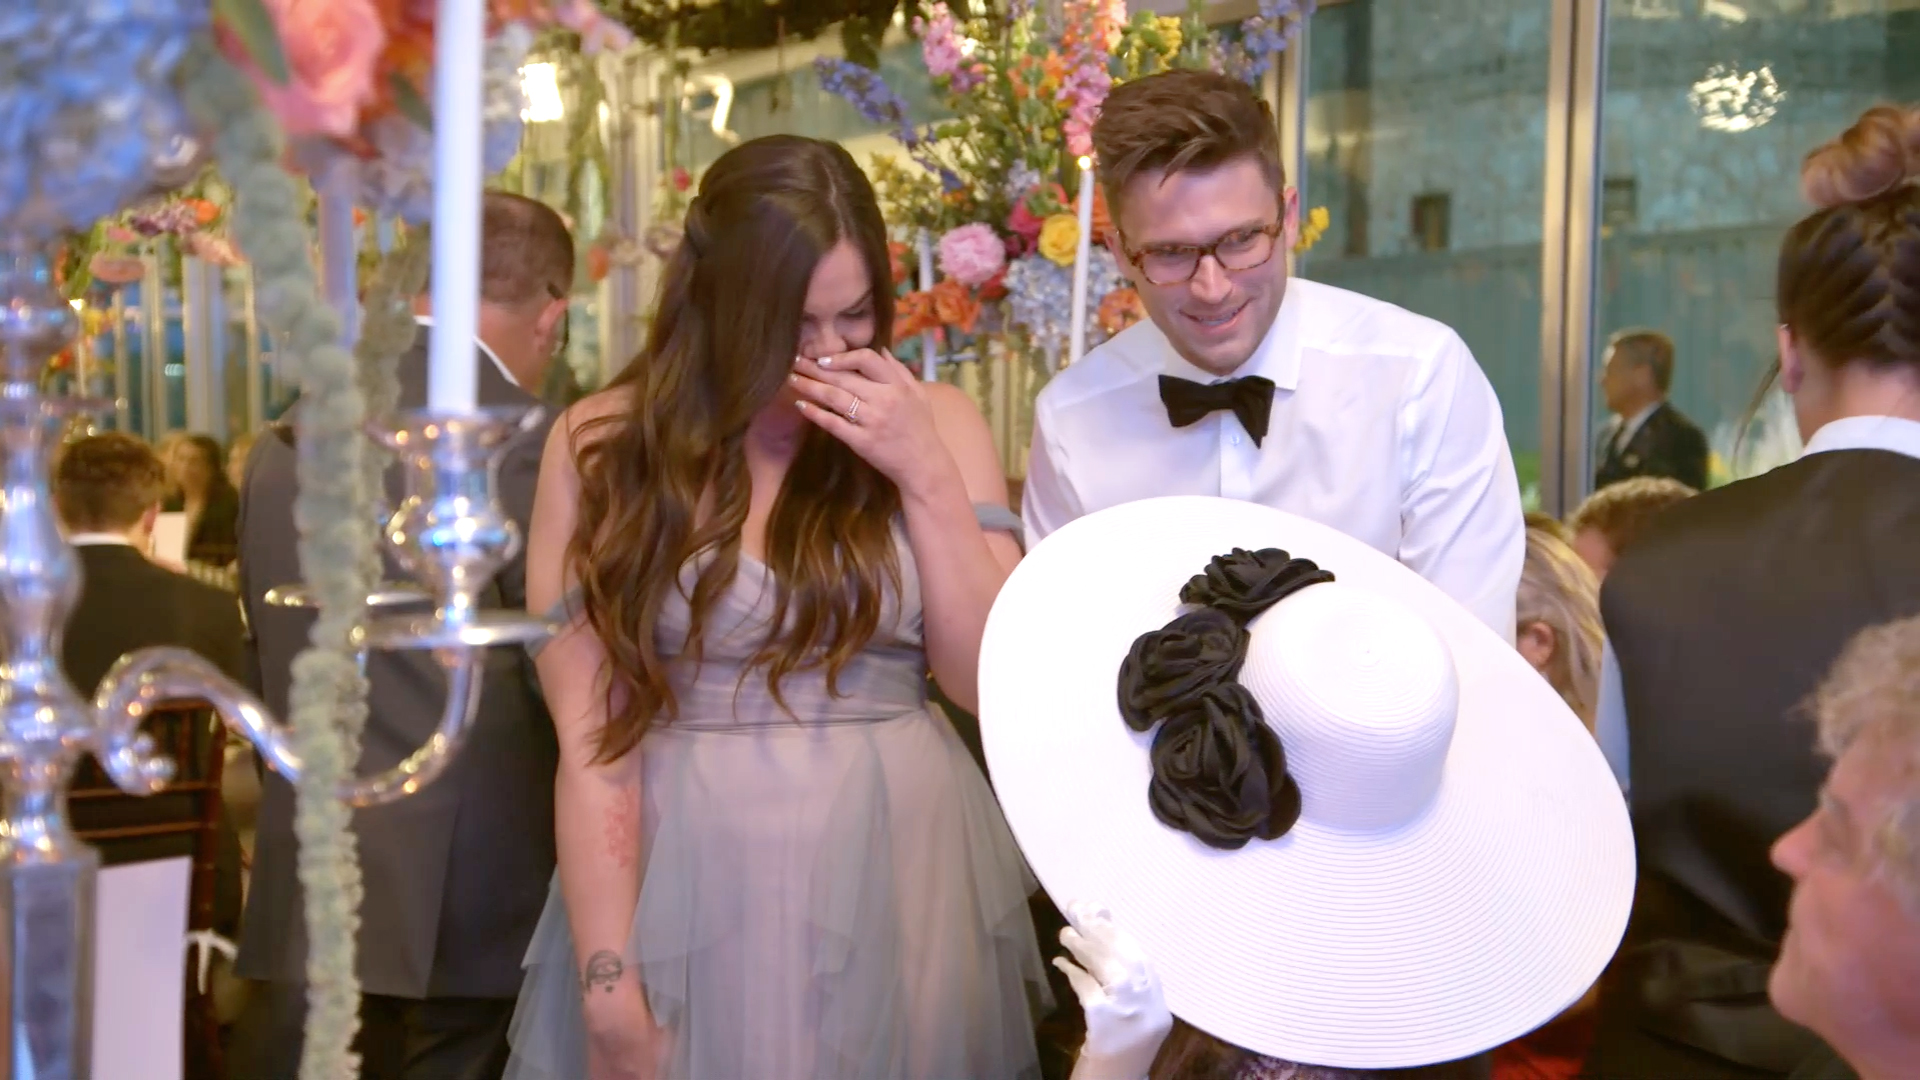 Lisa Vanderpump Can't Believe Tom Schwartz and Katie Maloney-Schwartz Are Not Married